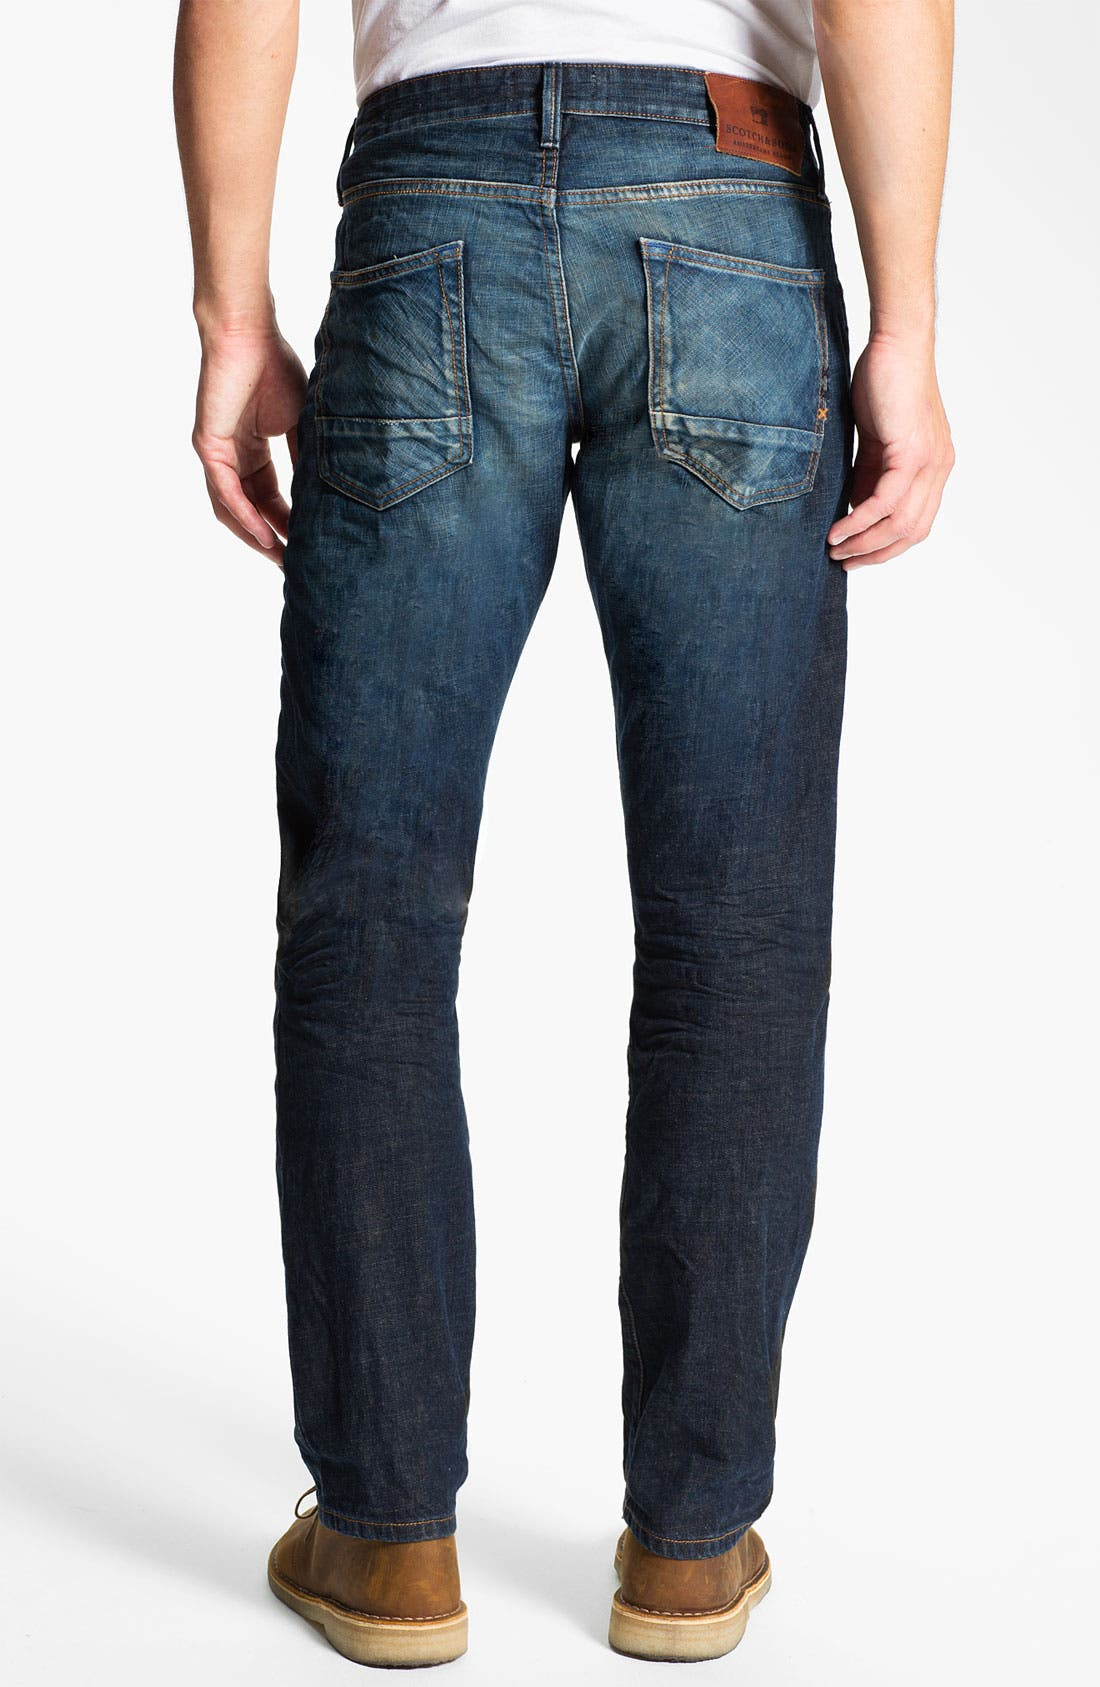 Main Image - Scotch & Soda 'Ralston' Slim Straight Leg Jeans (Blue Buzz)